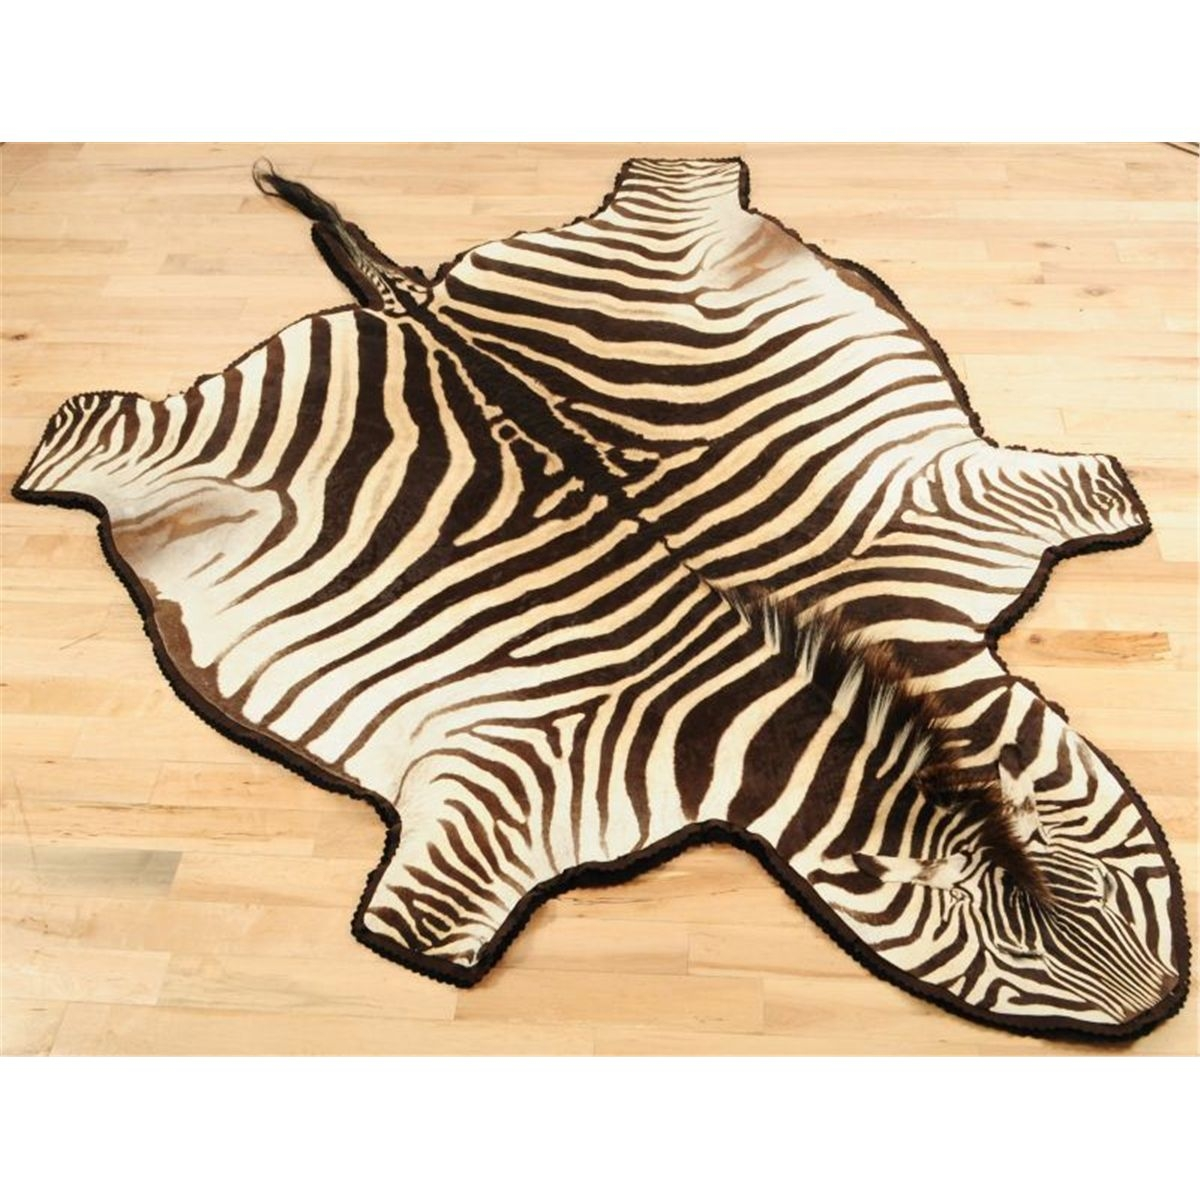 Rugs Unique Interior Rugs Design With Exciting Zebra Skin Rug Intended For Zebra Skin Rugs (Image 9 of 15)